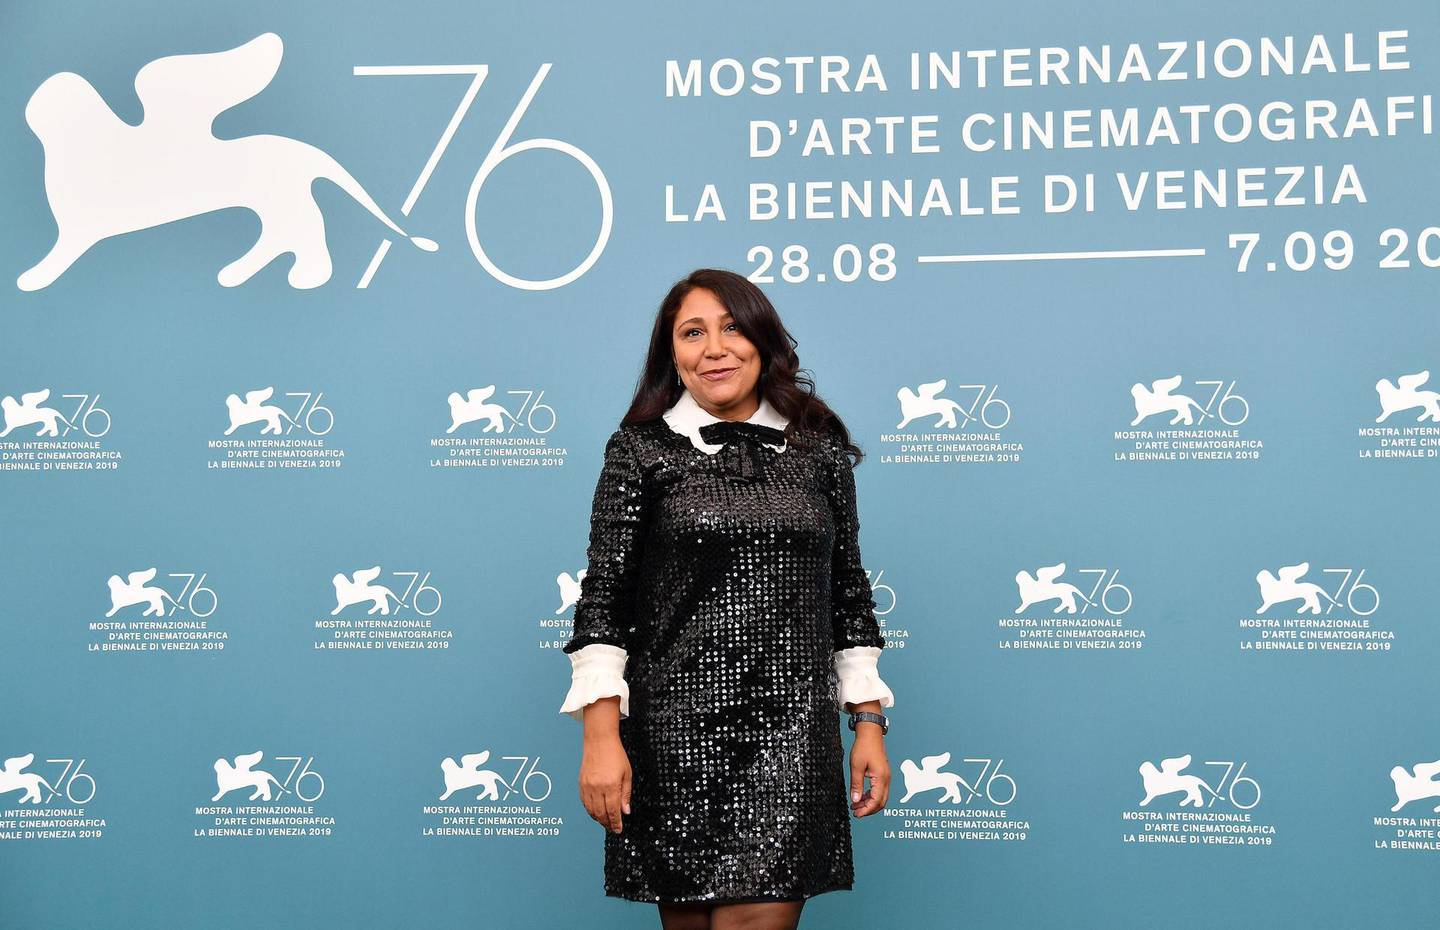 epa07801100 Saudi Arabian director Haifaa al-Mansour poses at a photocall for 'The Perfect Candidate' during the 76th annual Venice International Film Festival, in Venice, Italy, 29 August 2019. The movie is presented in the official competition 'Venezia 76' at the festival running from 28 August to 07 September.  EPA/ETTORE FERRARI